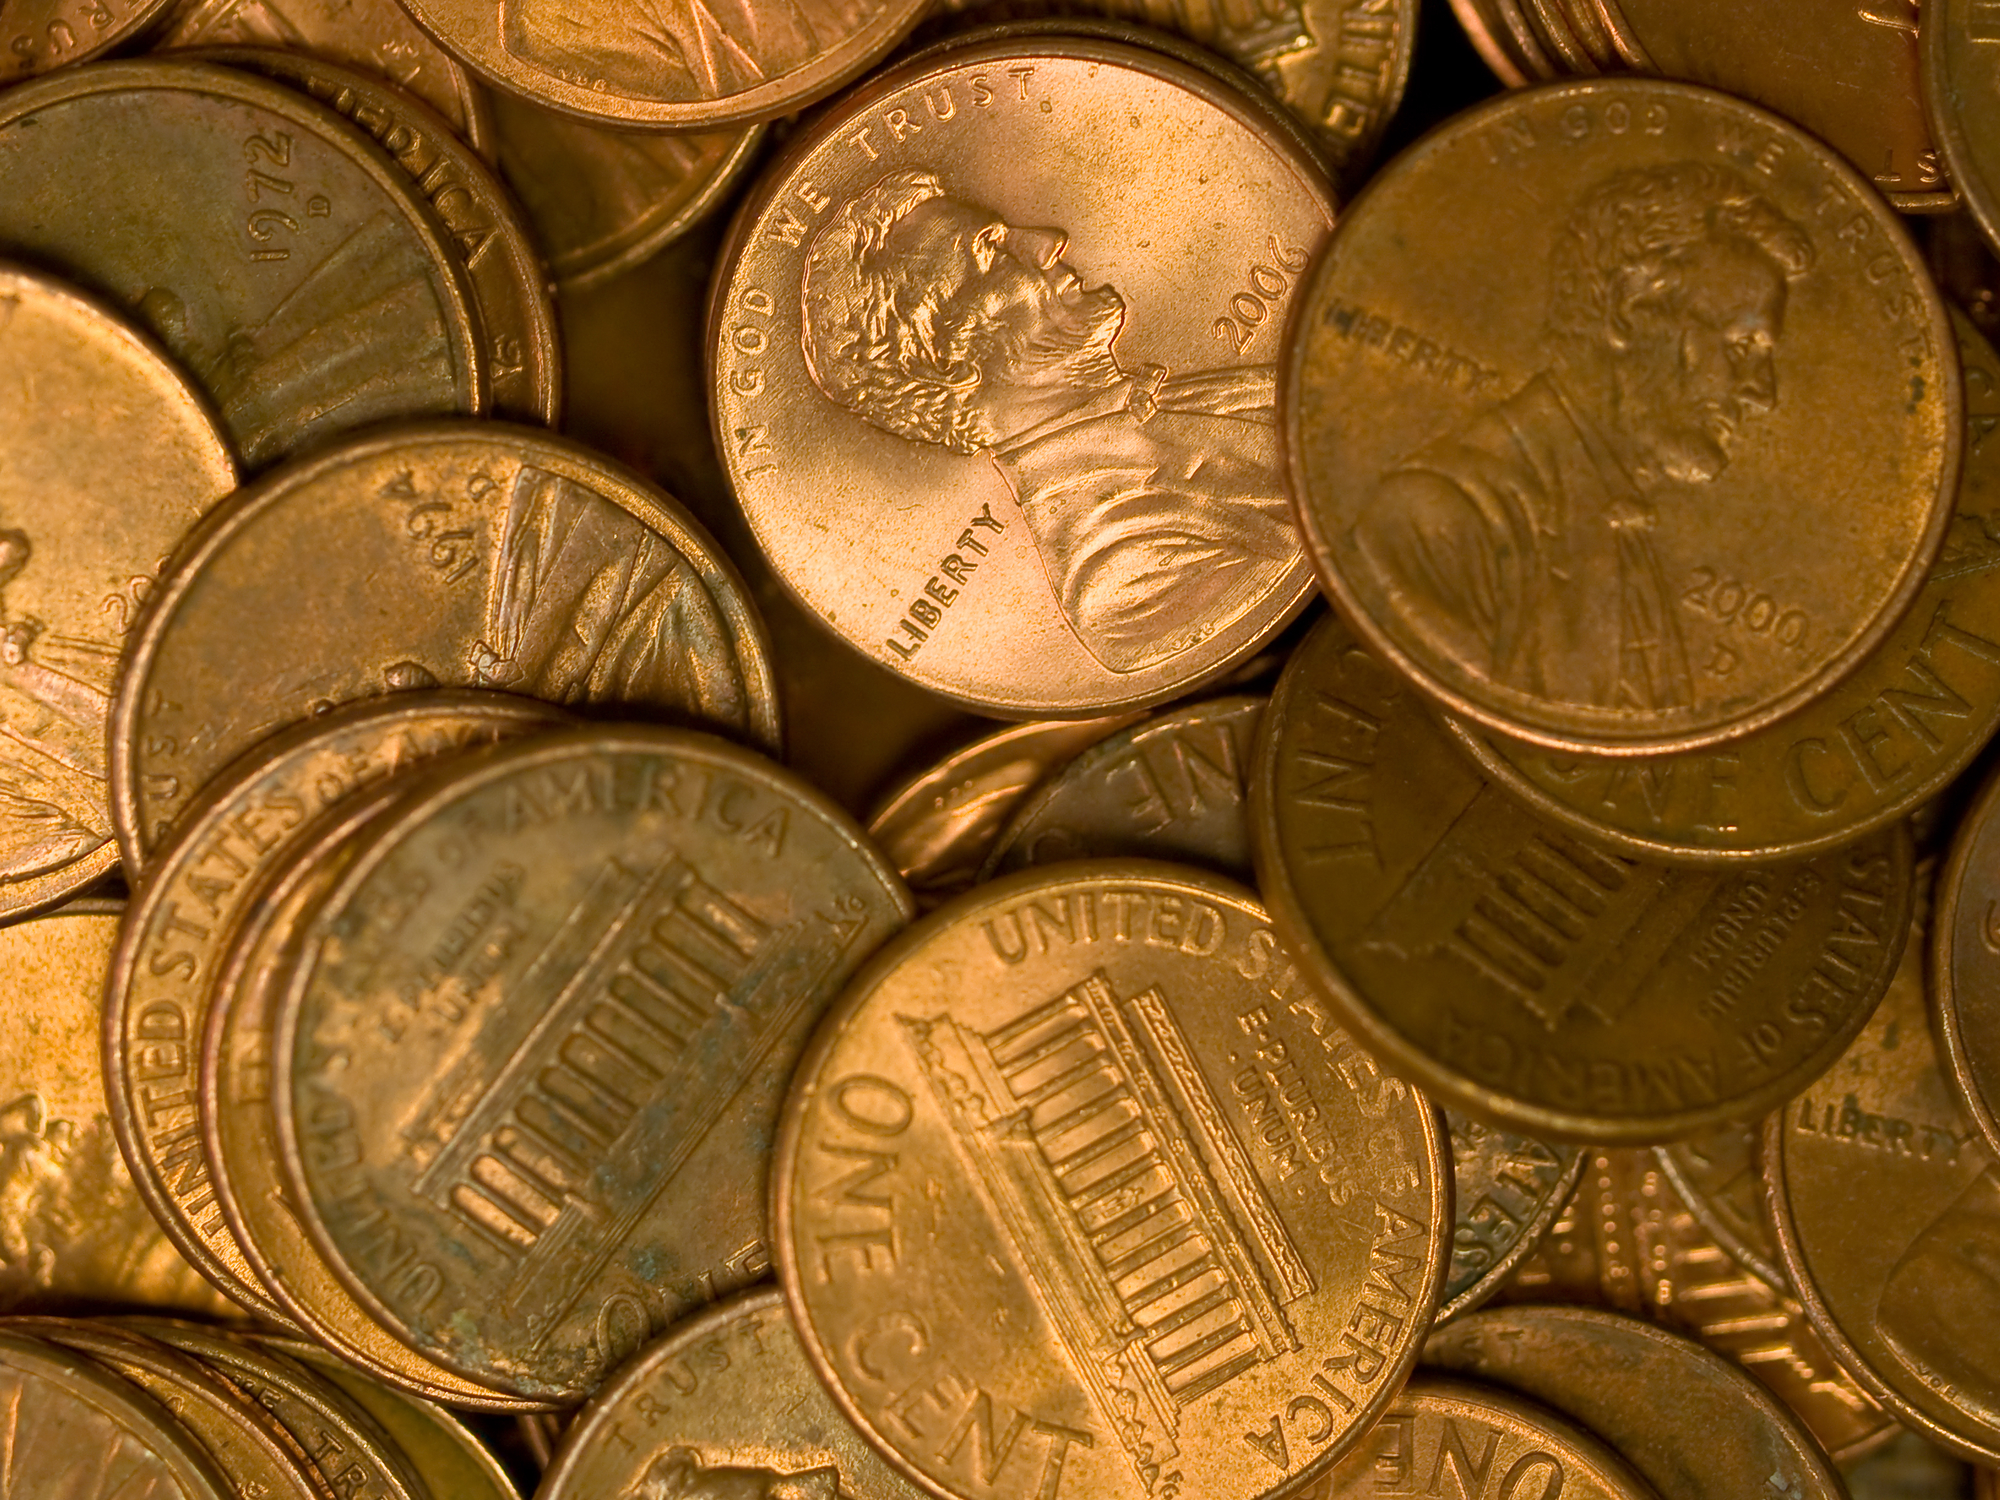 Interesting Facts About the Penny - First & Peoples Bank and